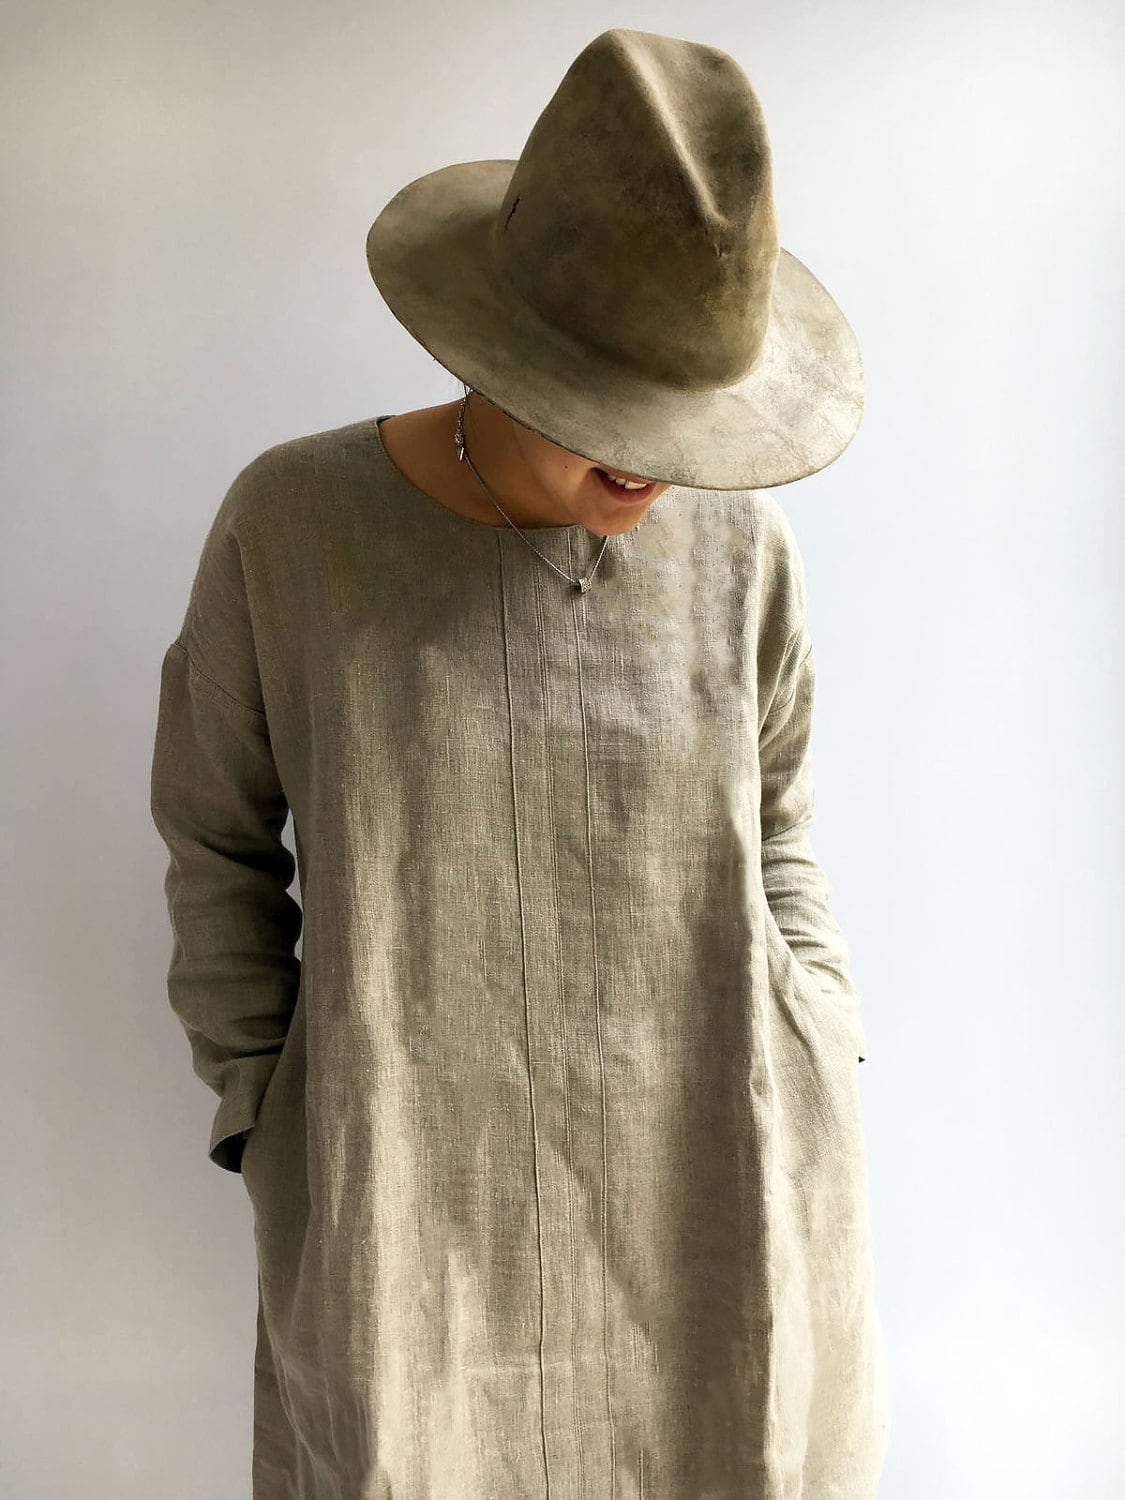 Natural Linen Tunic Tunic Top Plus Size Tunic Linen